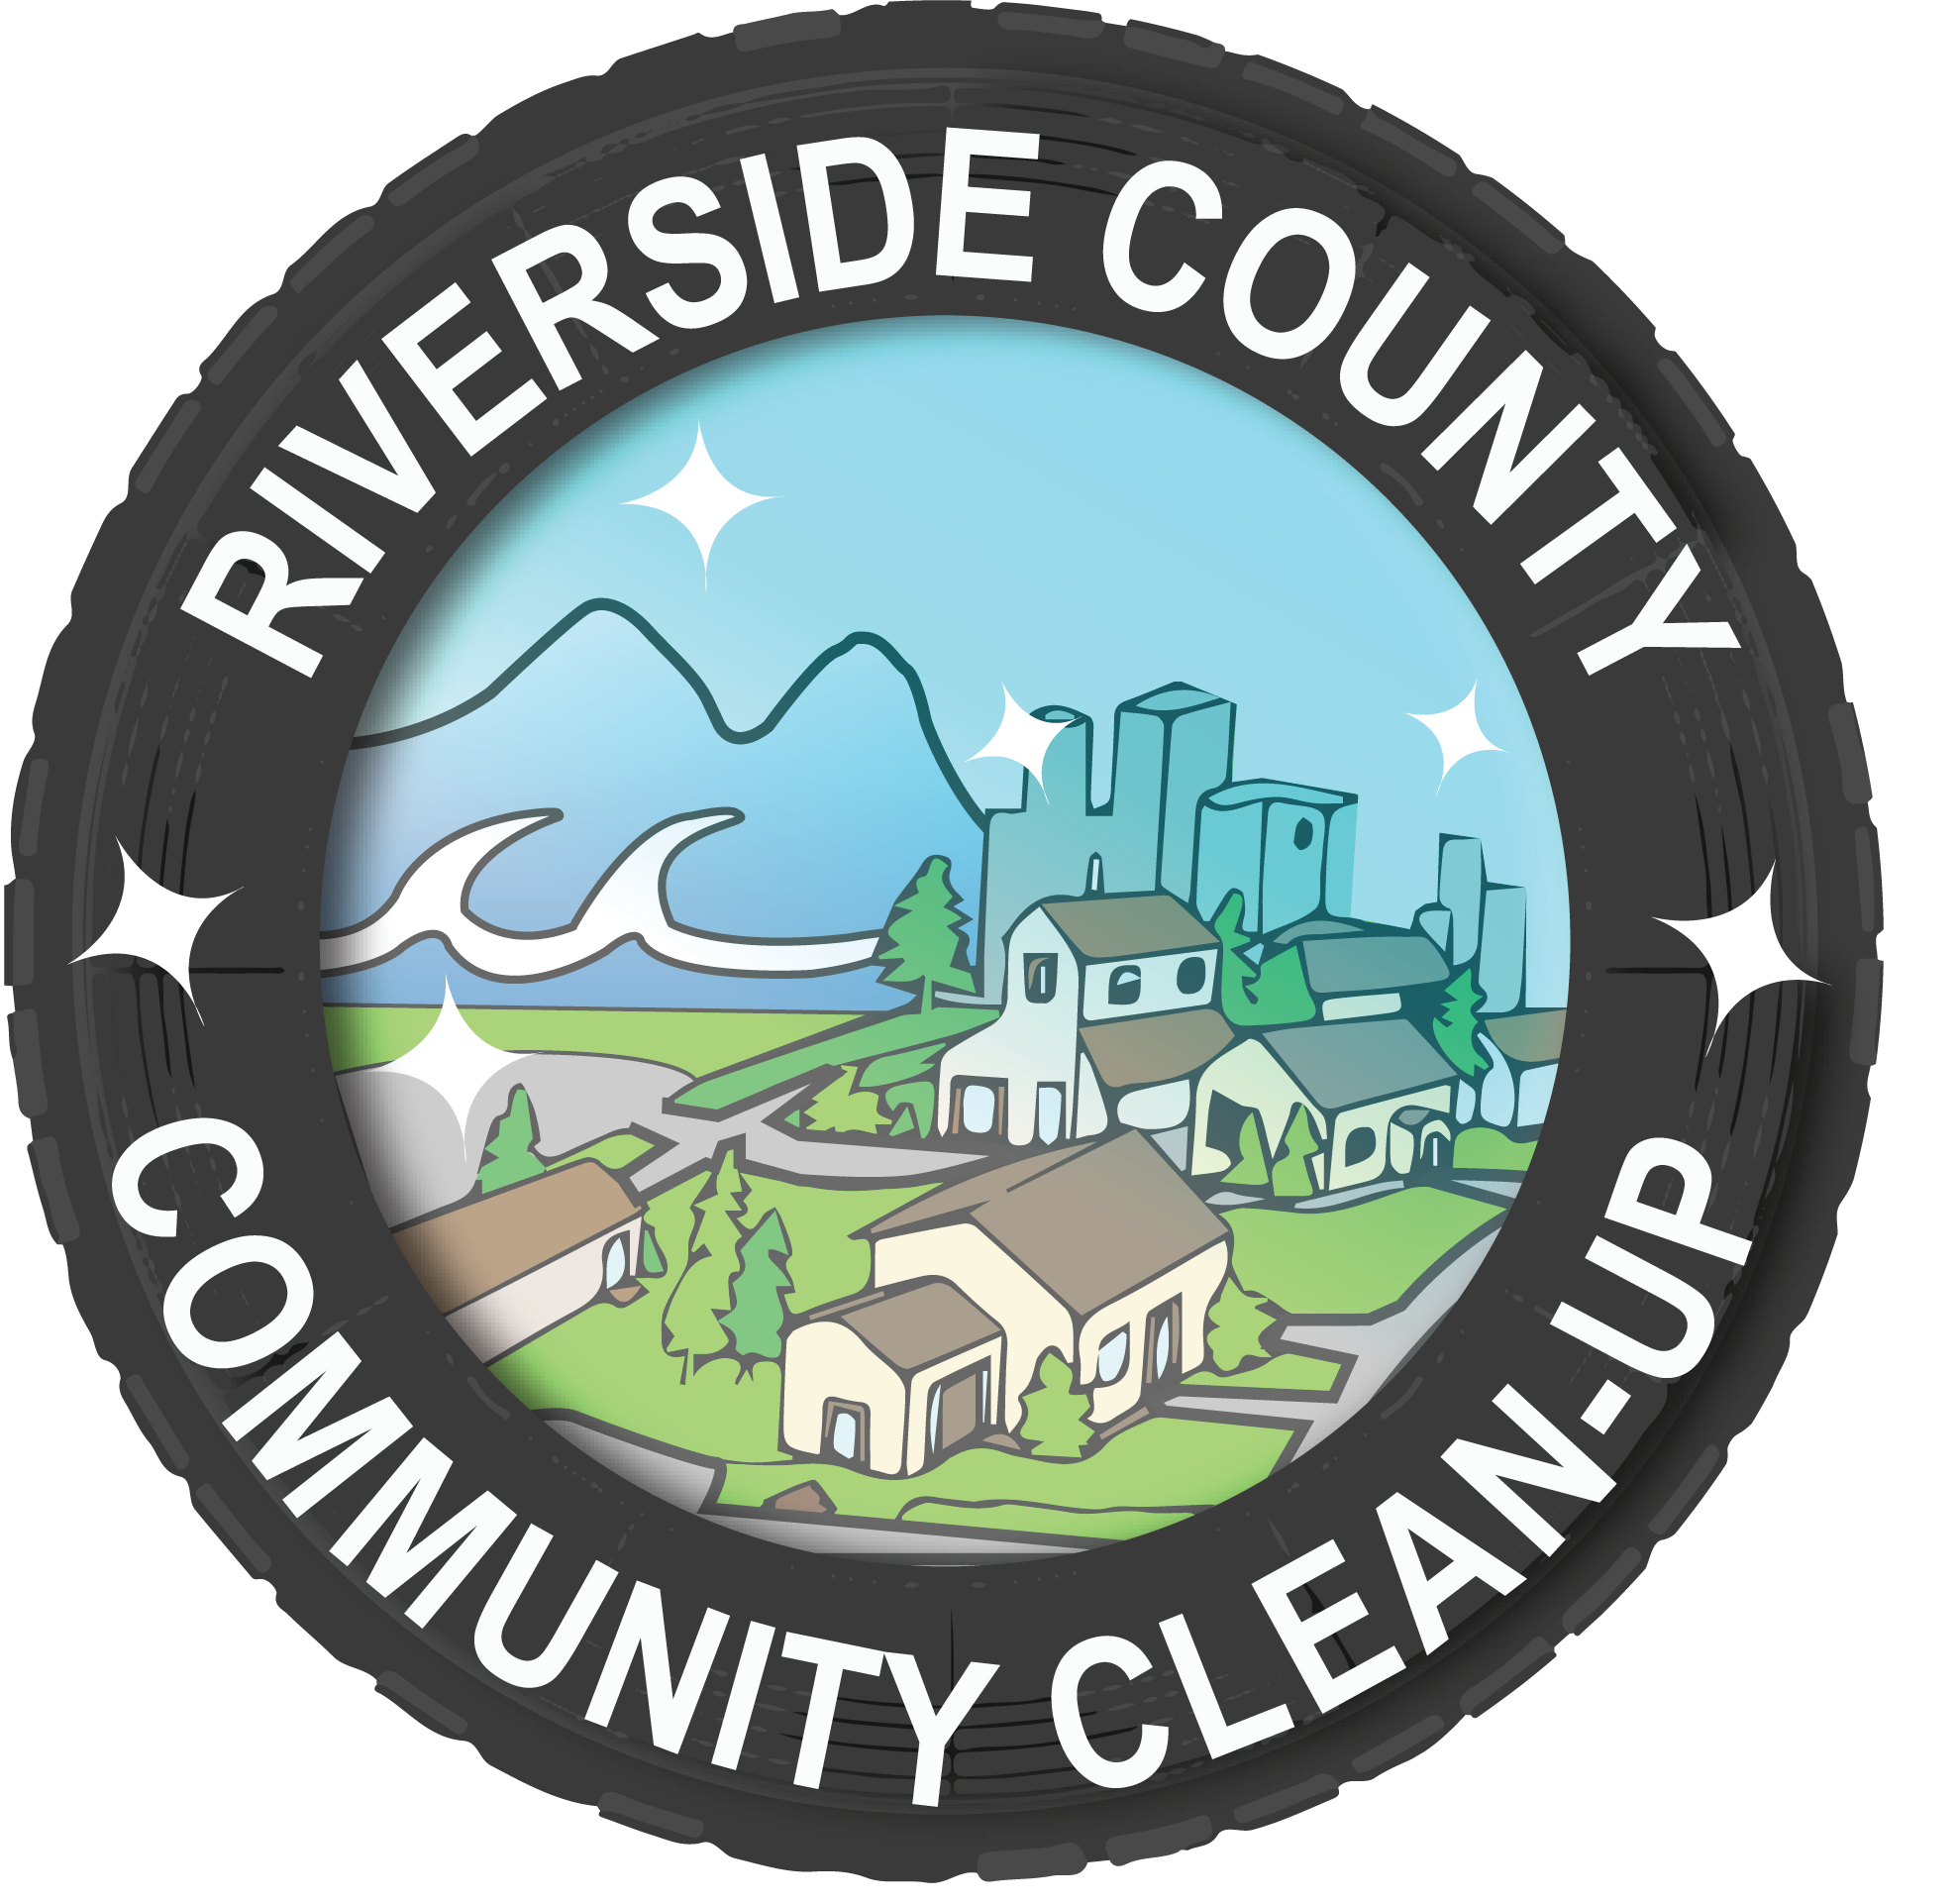 Free up events the. Community clipart clean community